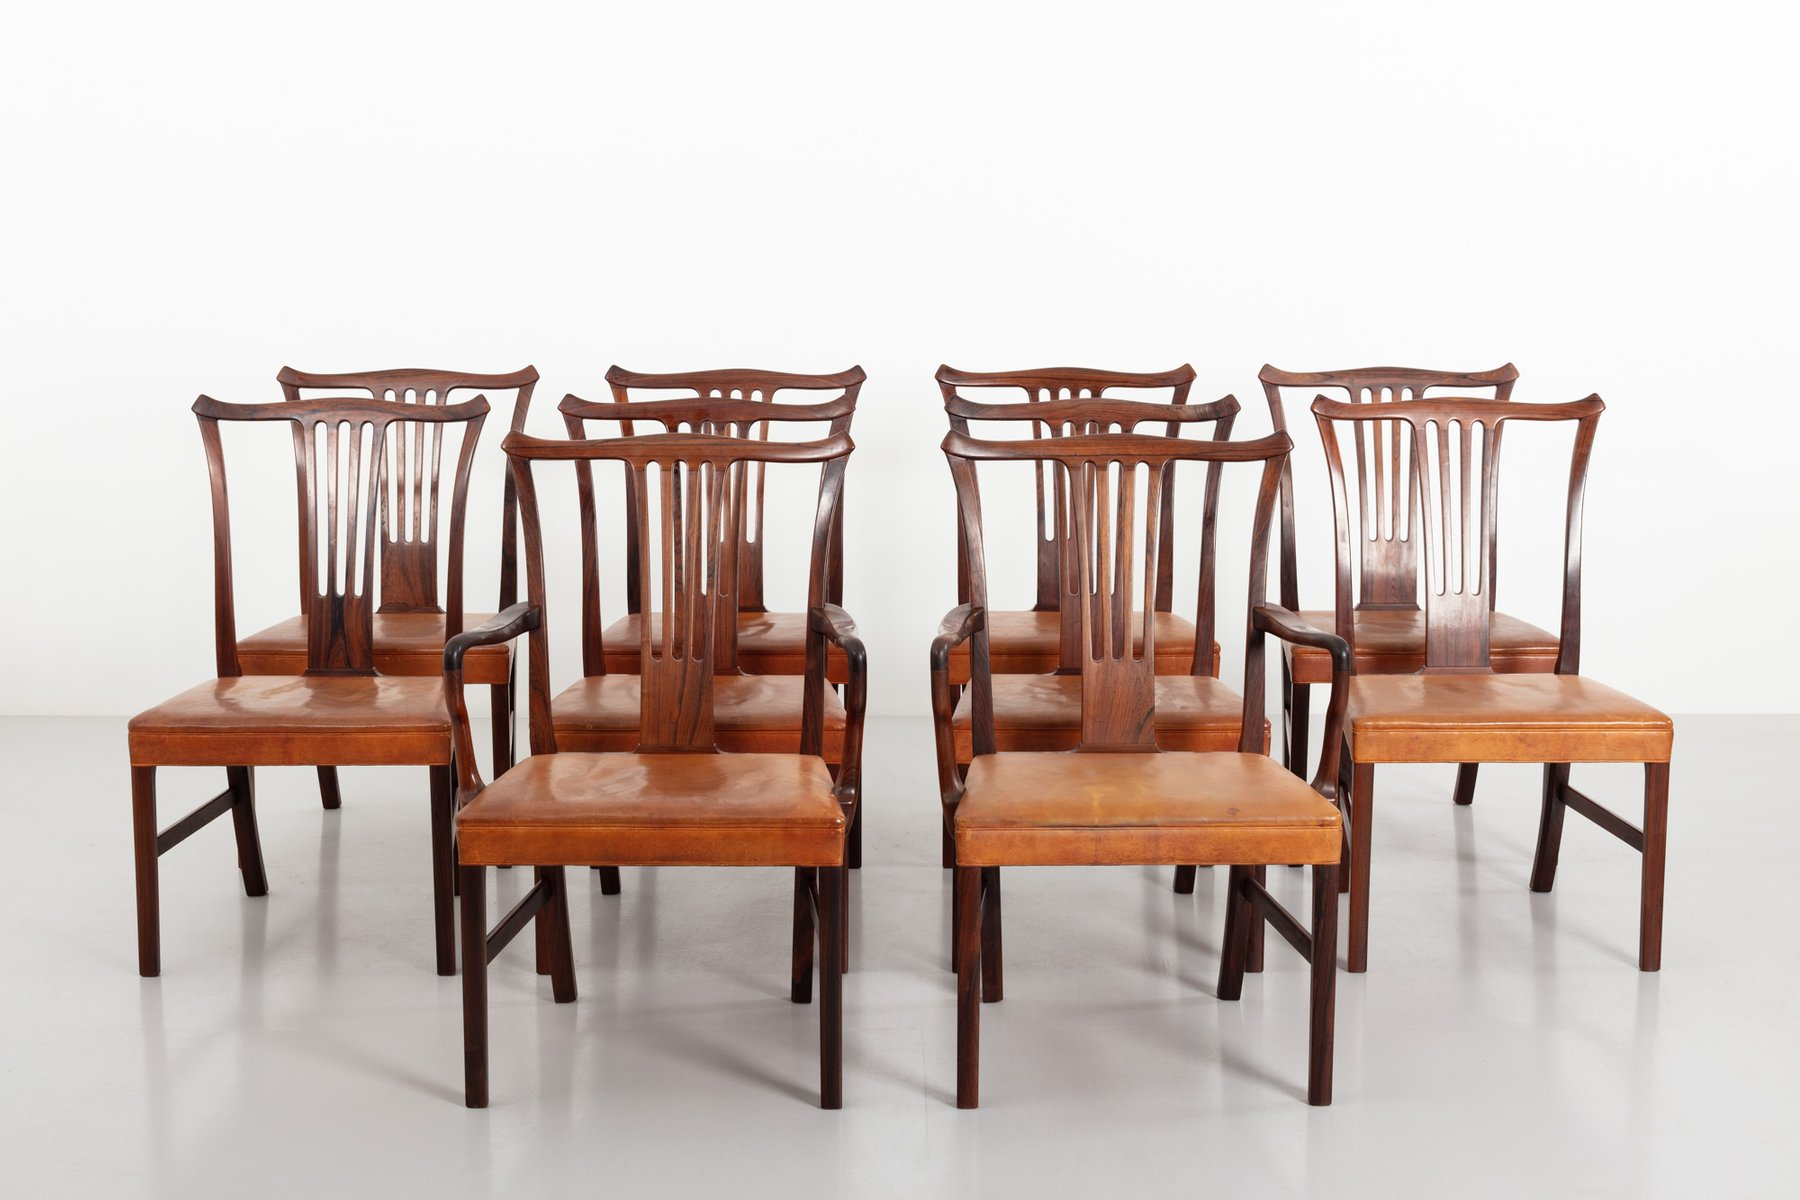 Vintage Dining Chairs By Helge Vestergaard Jensen For Peder Pedersen 1940s Set Of 10